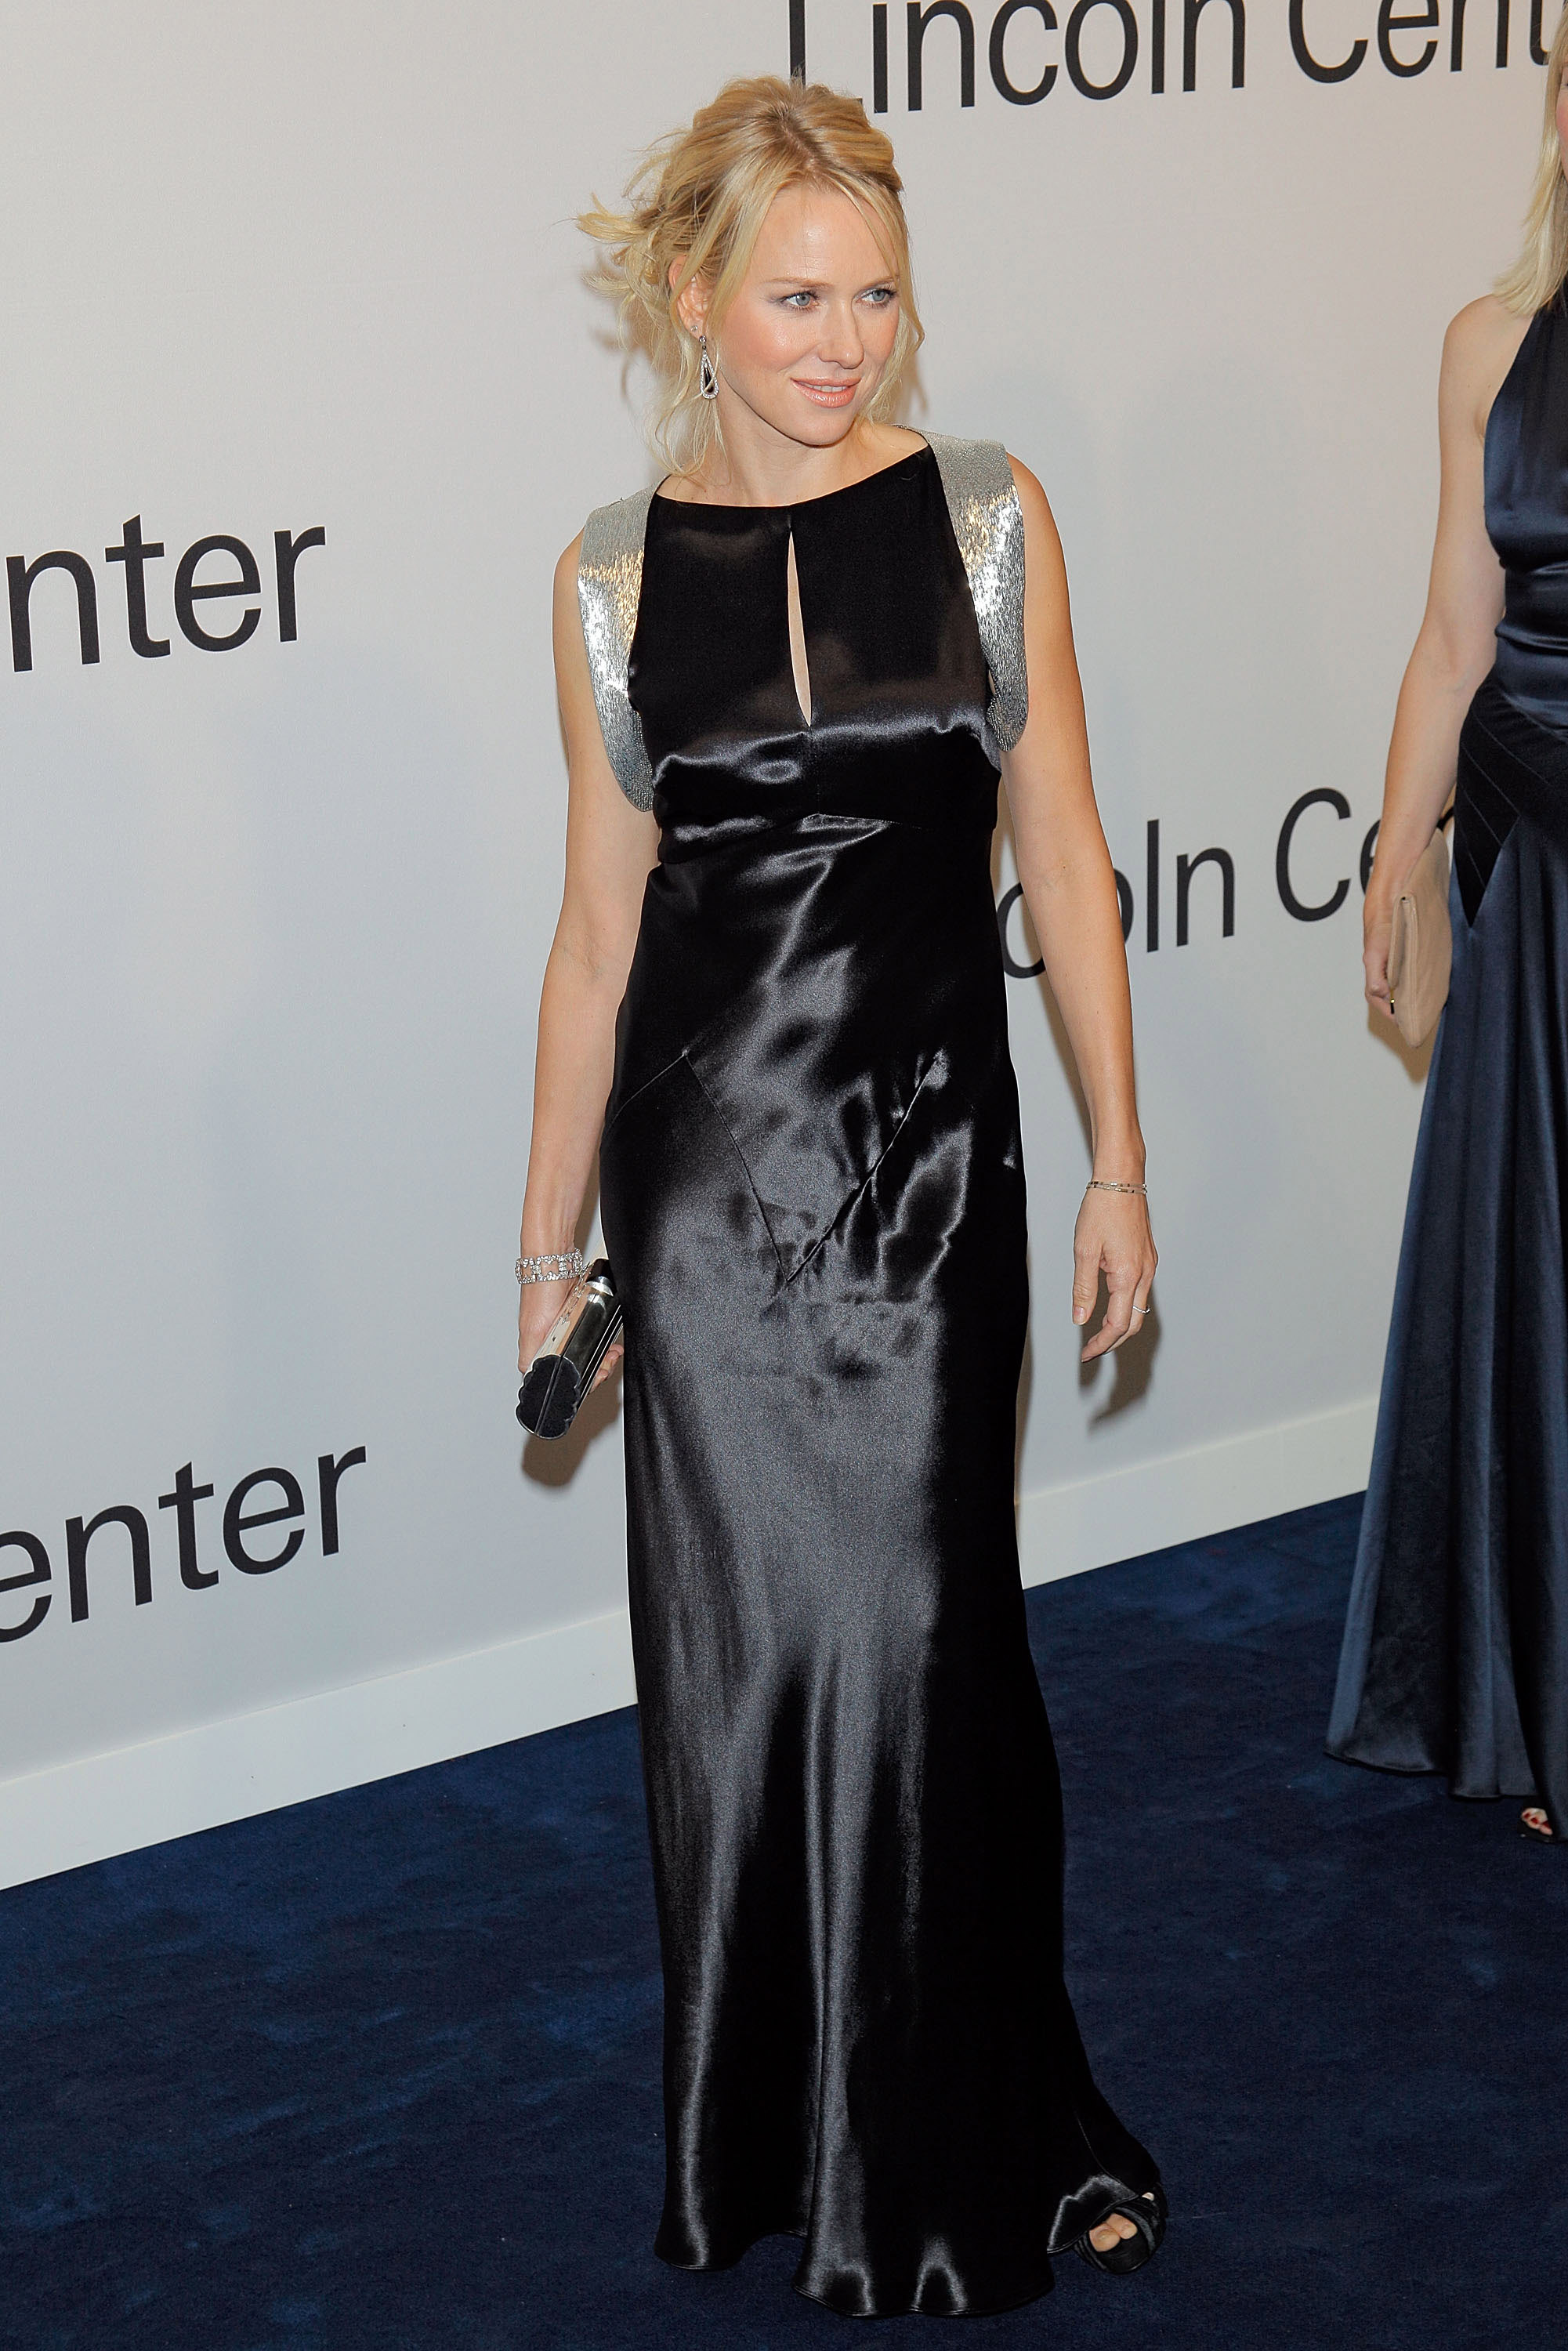 Naomi Watts wore a silk dress to a Ralph Lauren event in NYC.